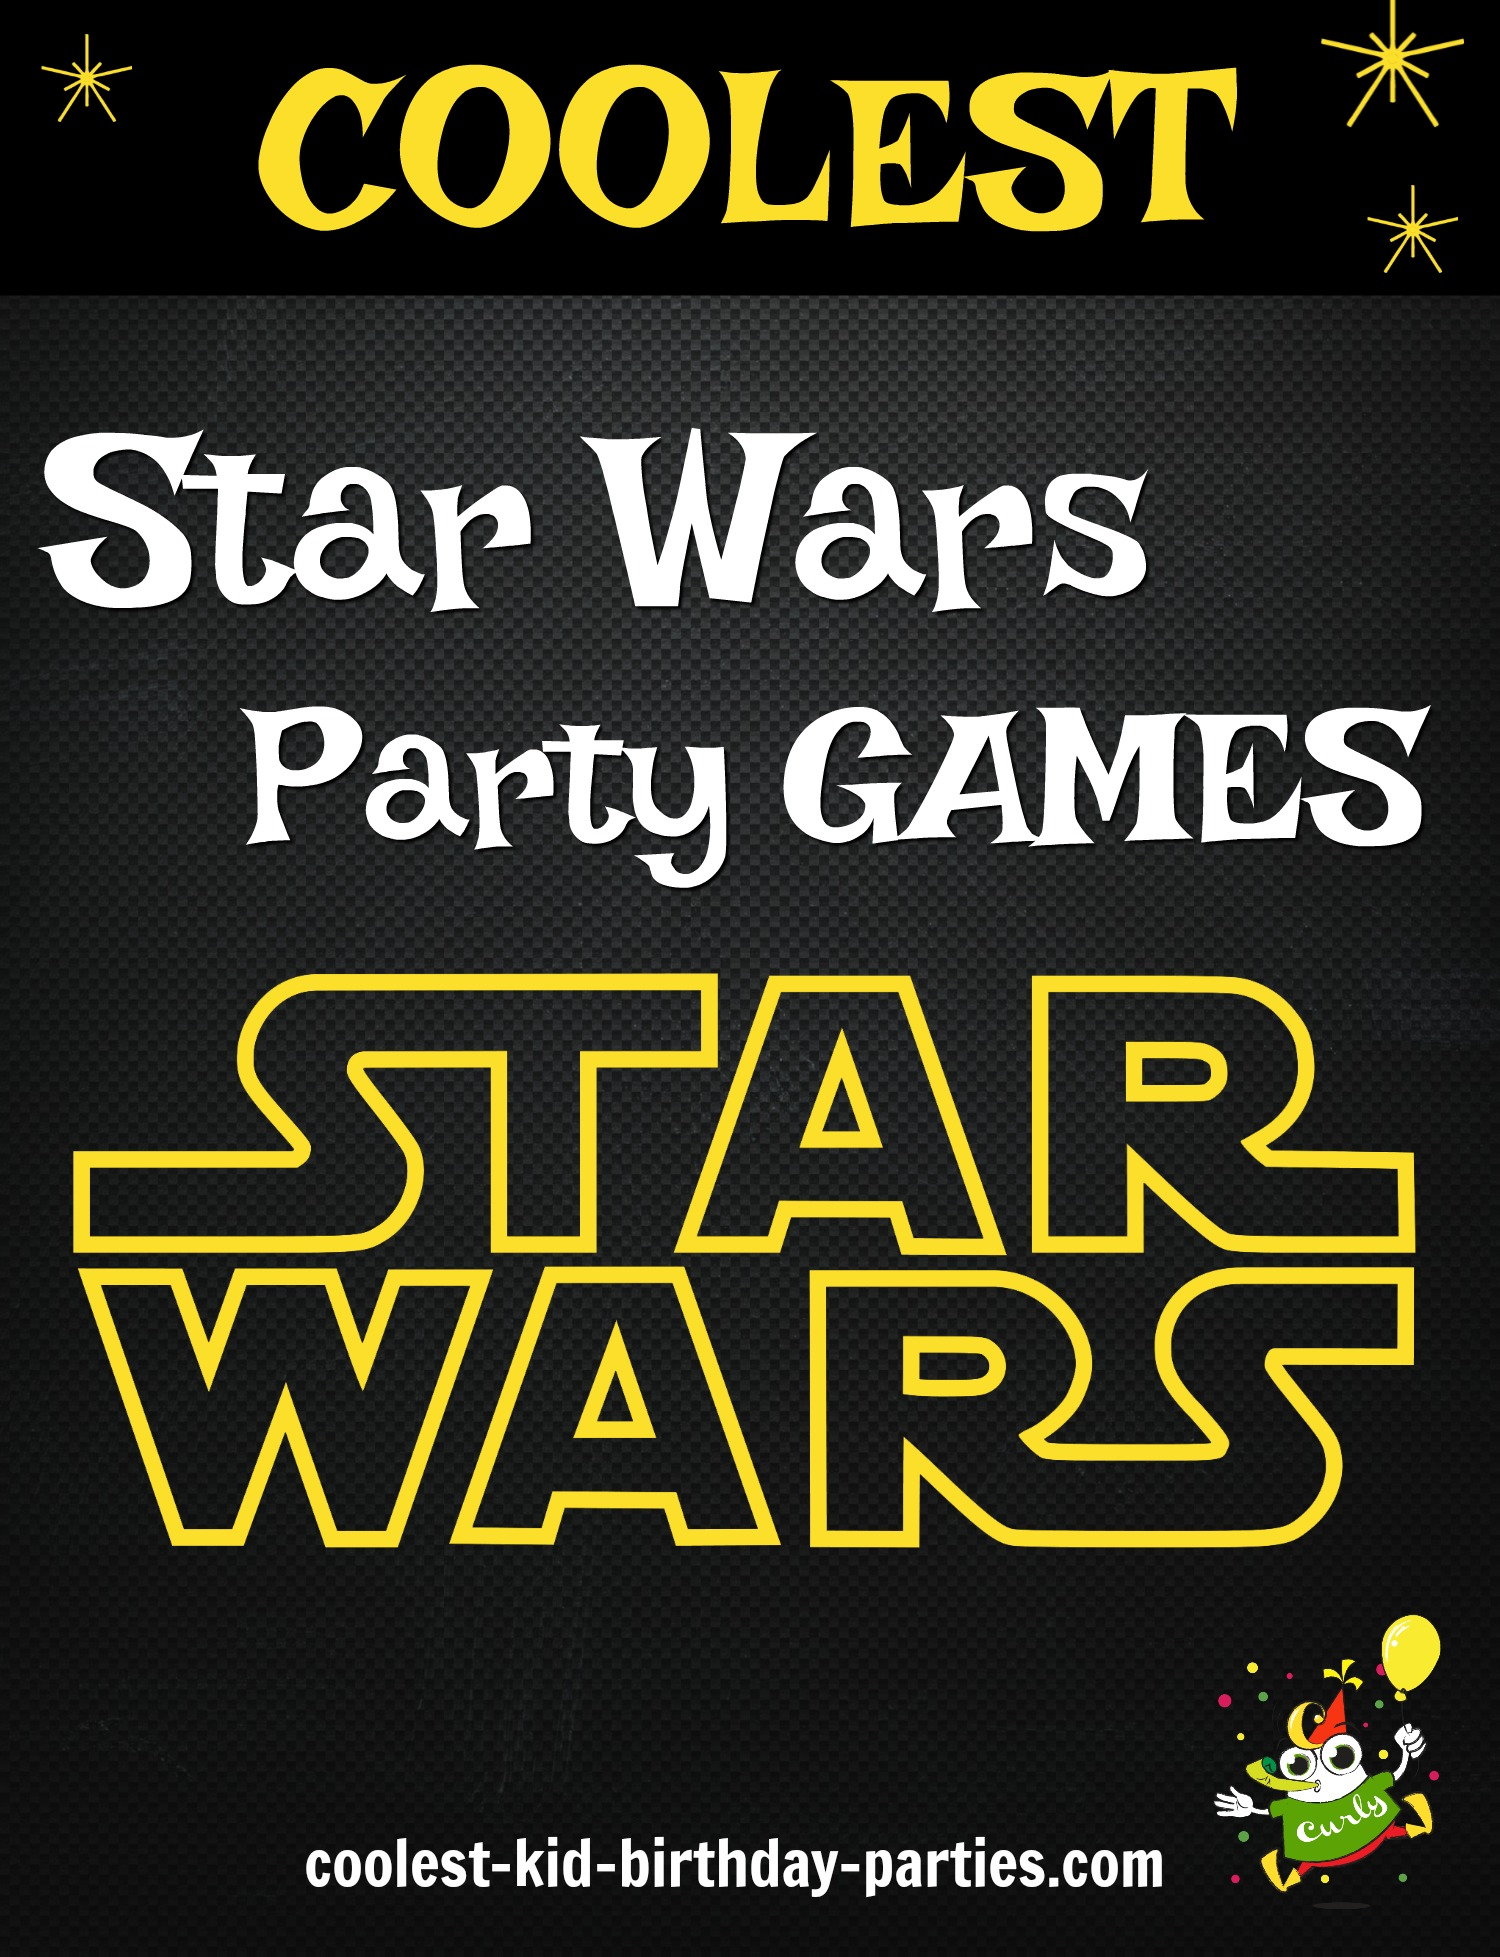 coolest star wars birthday party games